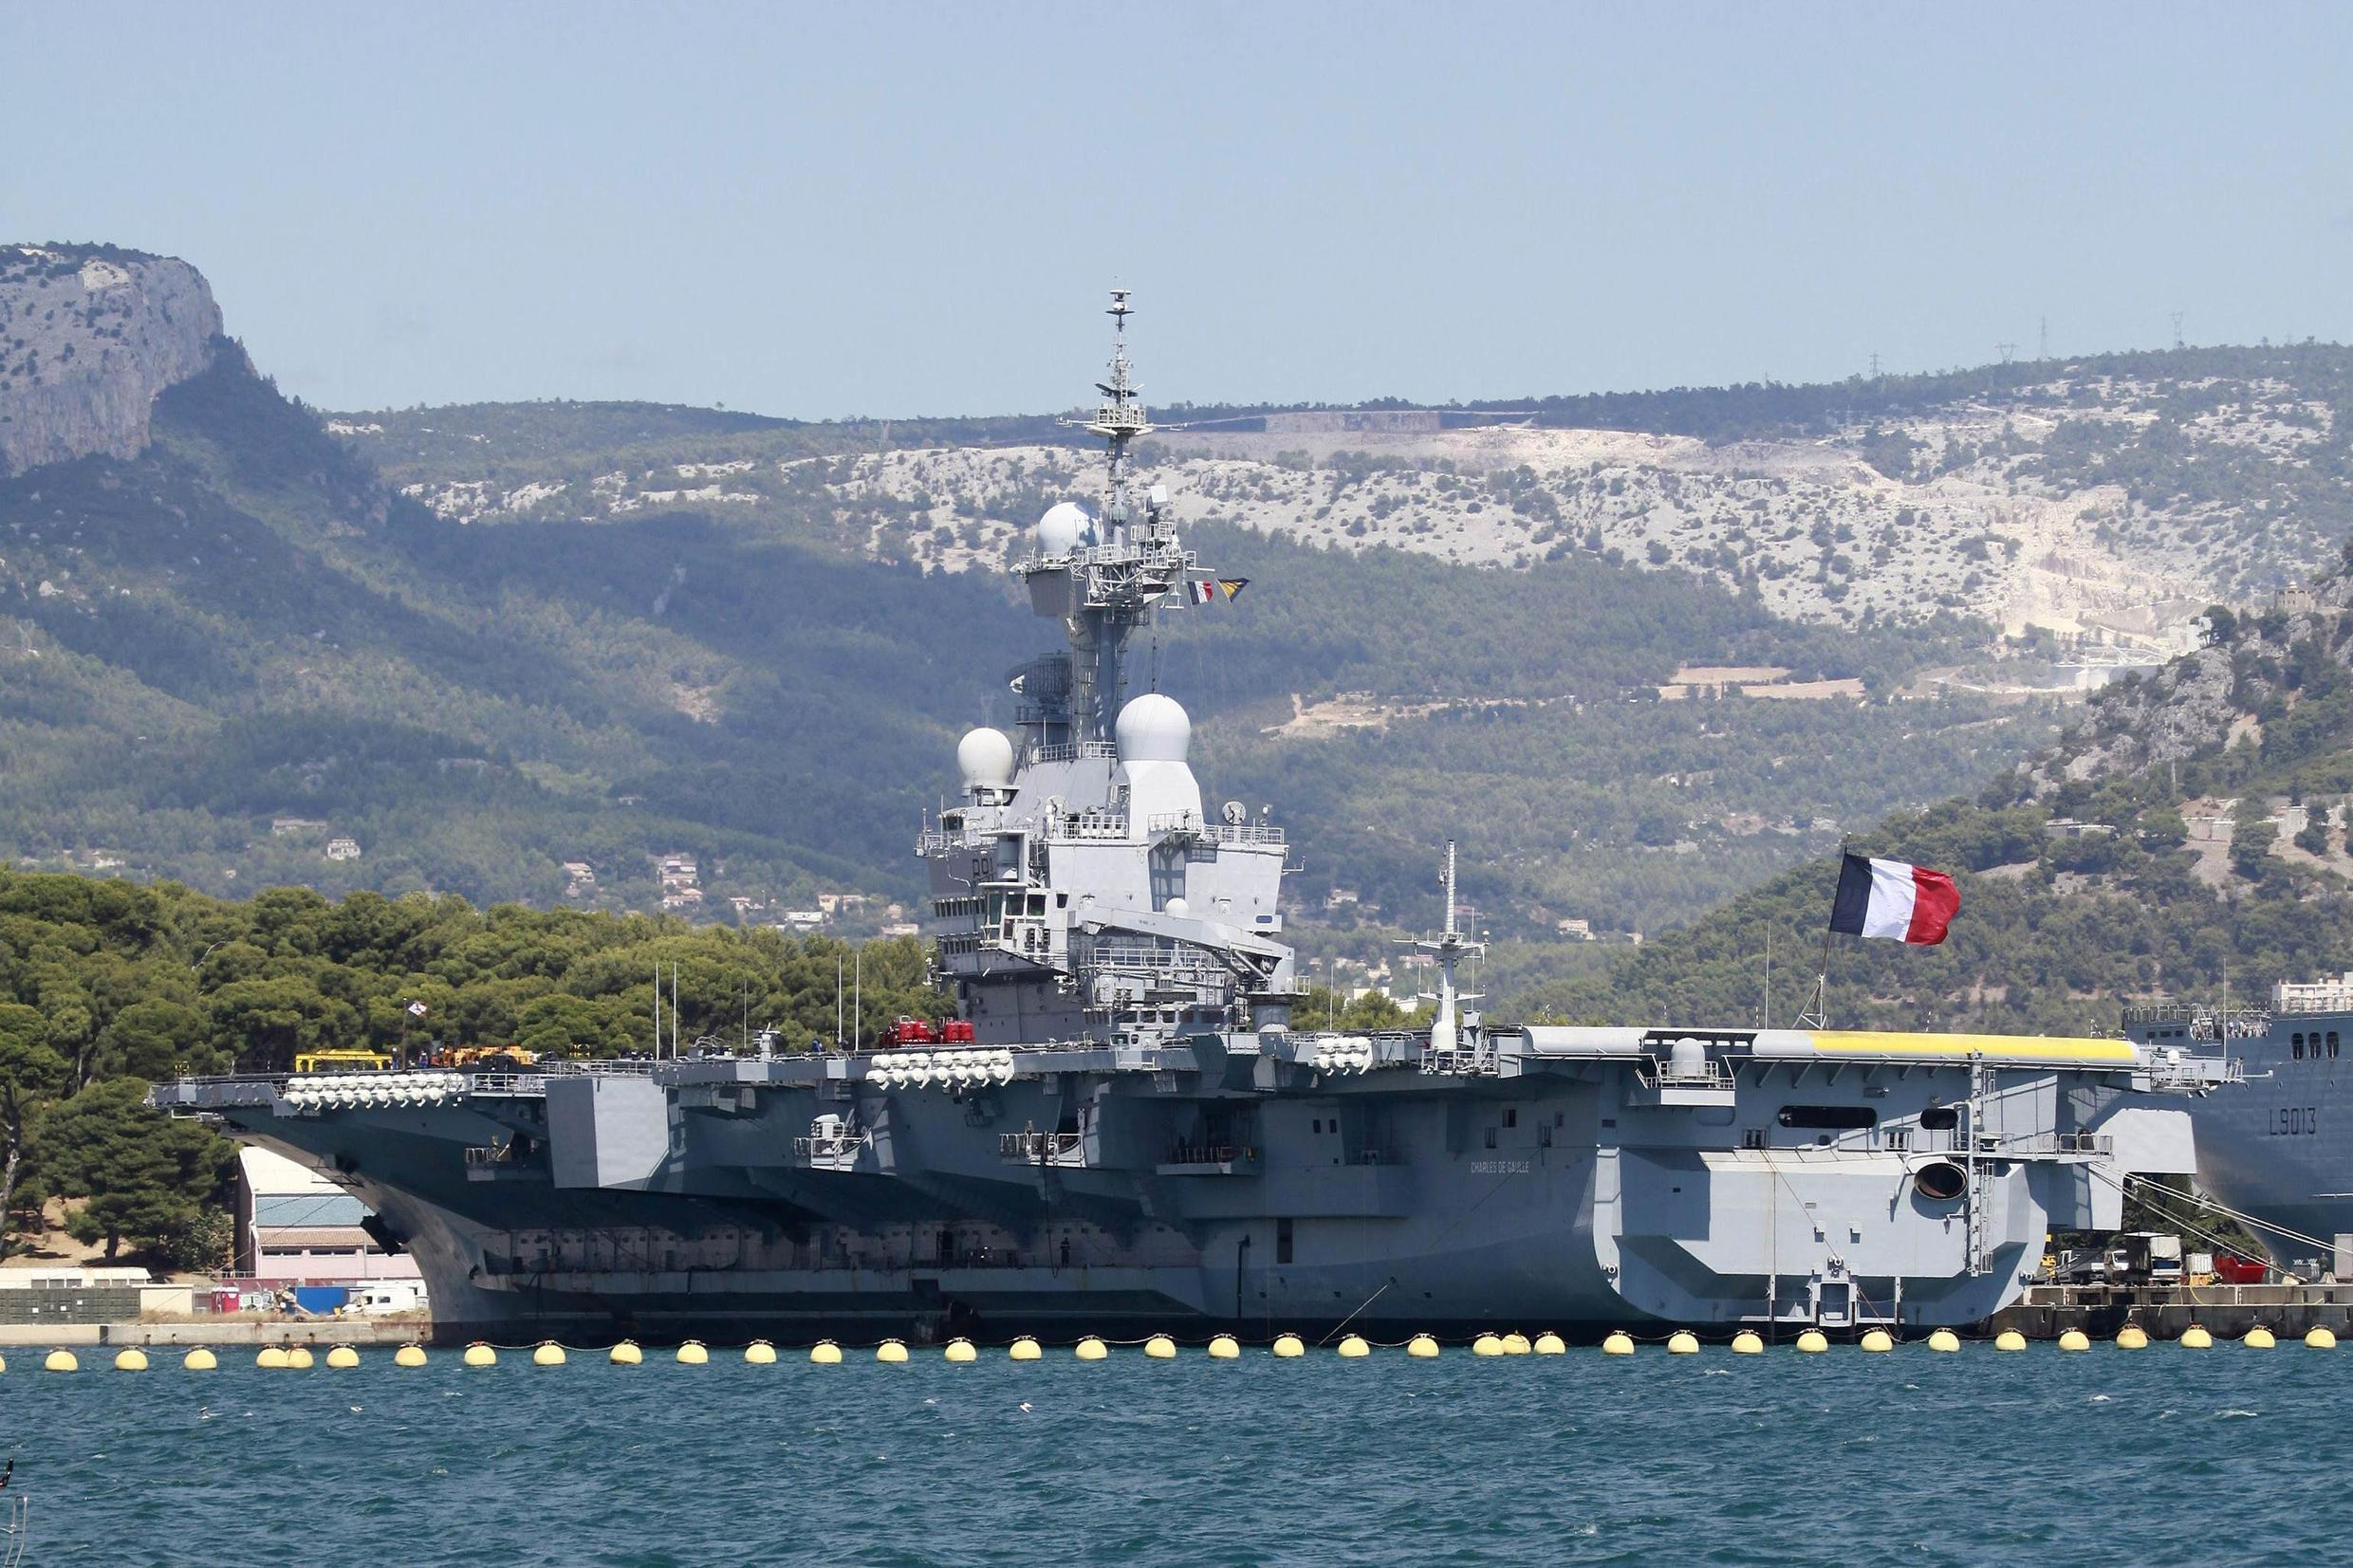 The Charles-de-Gaulle aircraft carrier